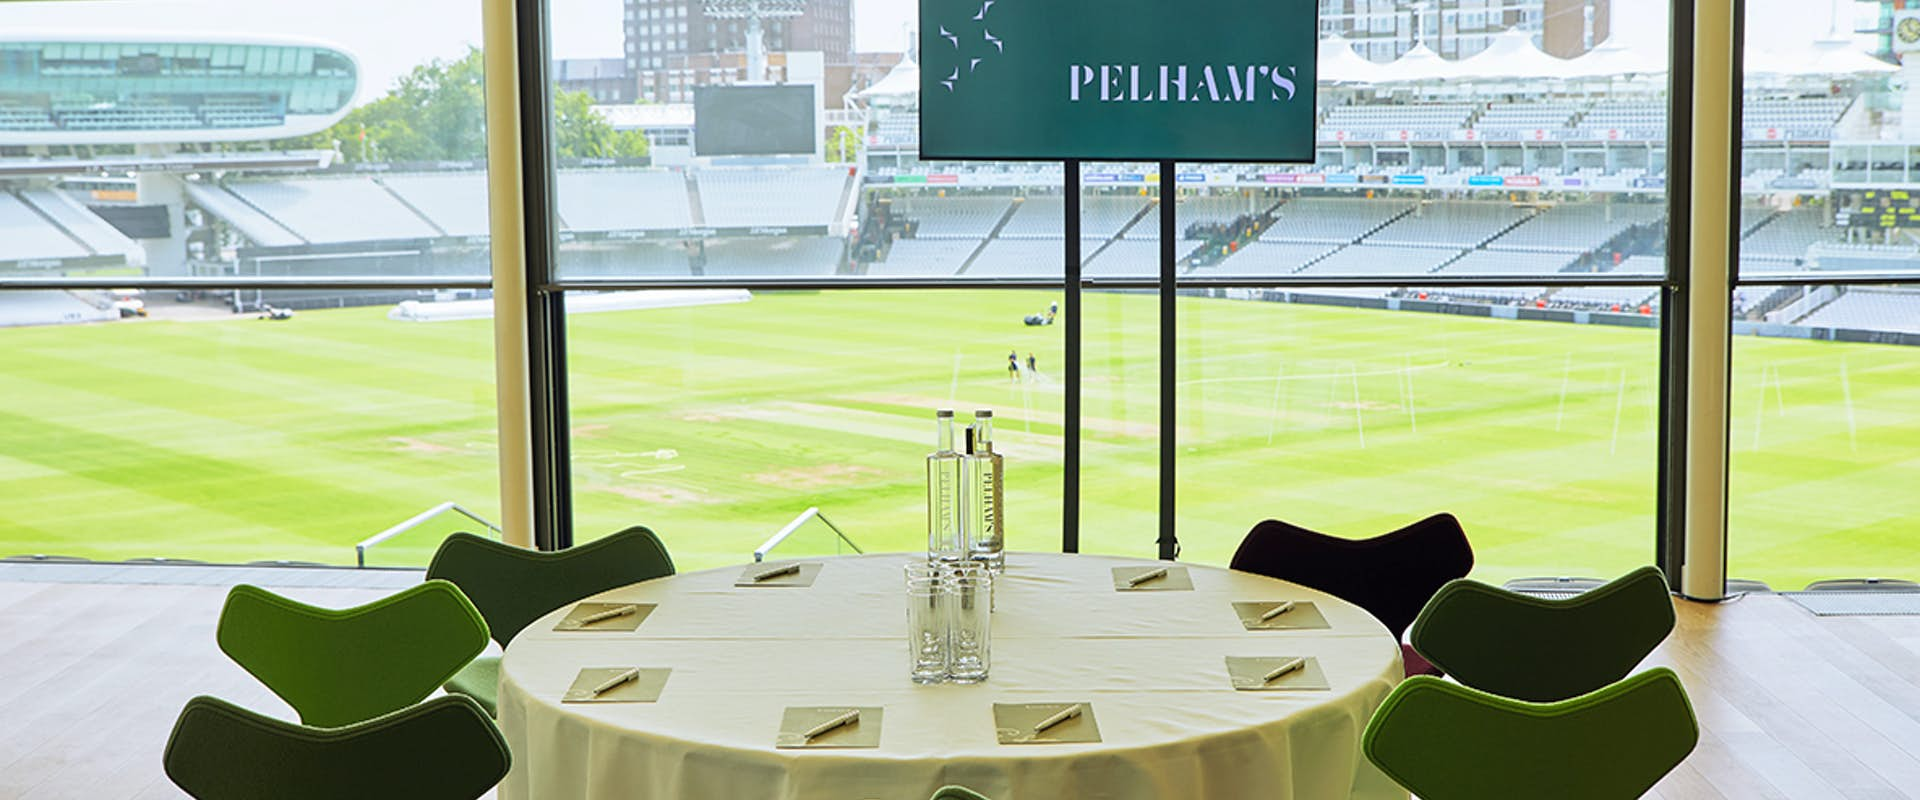 Pelham's at Lord's Cricket Ground